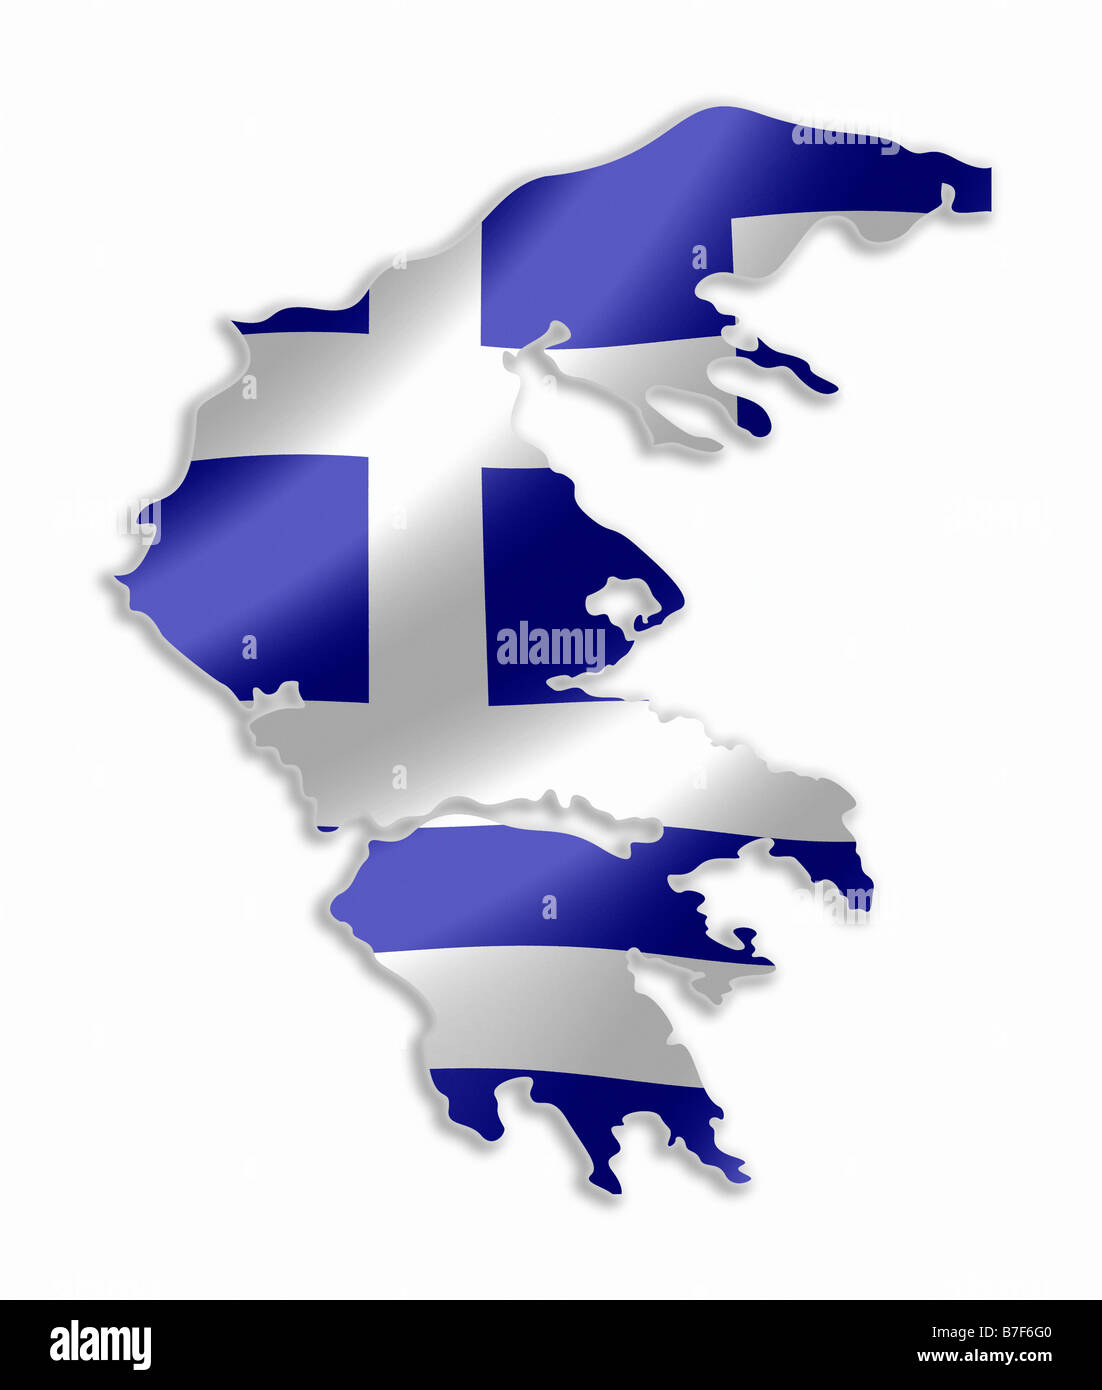 Country Of Greece Map.Greece Greek Country Map Outline With National Flag Inside Stock